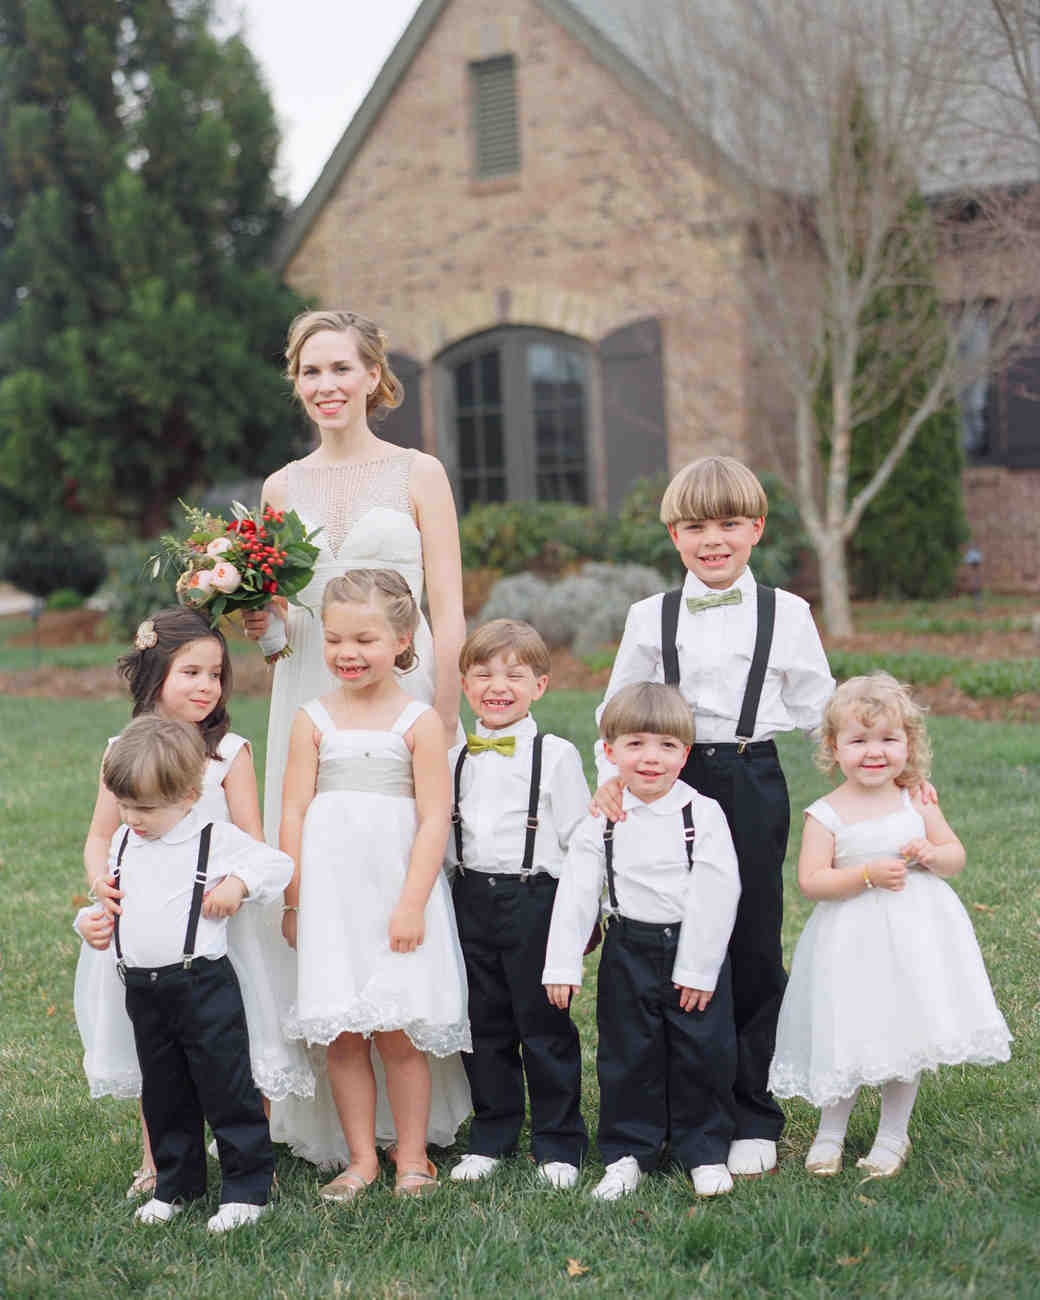 Wedding Ideas For Kids: How To Include Your Children In Your Wedding